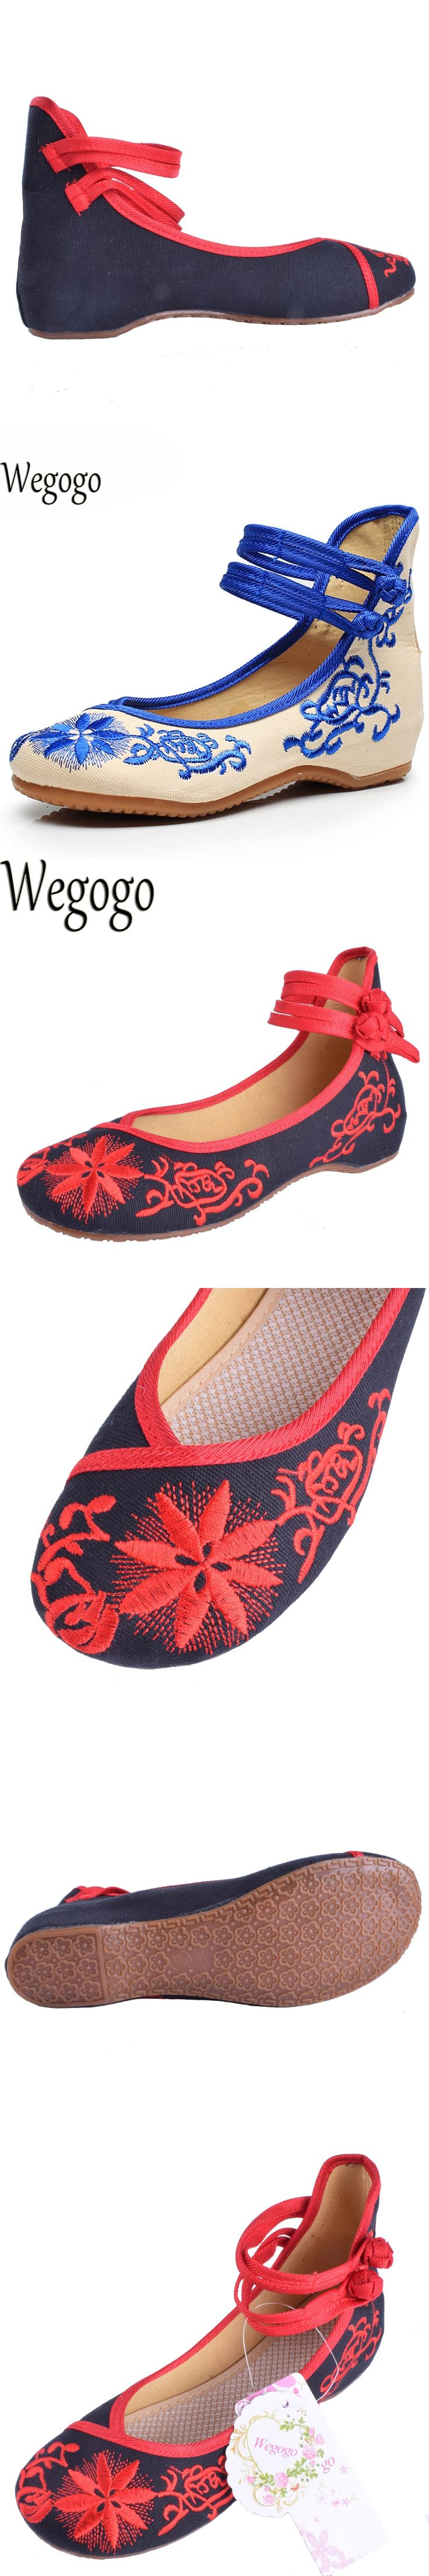 Fashion Women Shoes Old Beijing Mary Jane Flats Casual Shoes Chinese  Embroidered Cloth Woman Ballerina Shoes